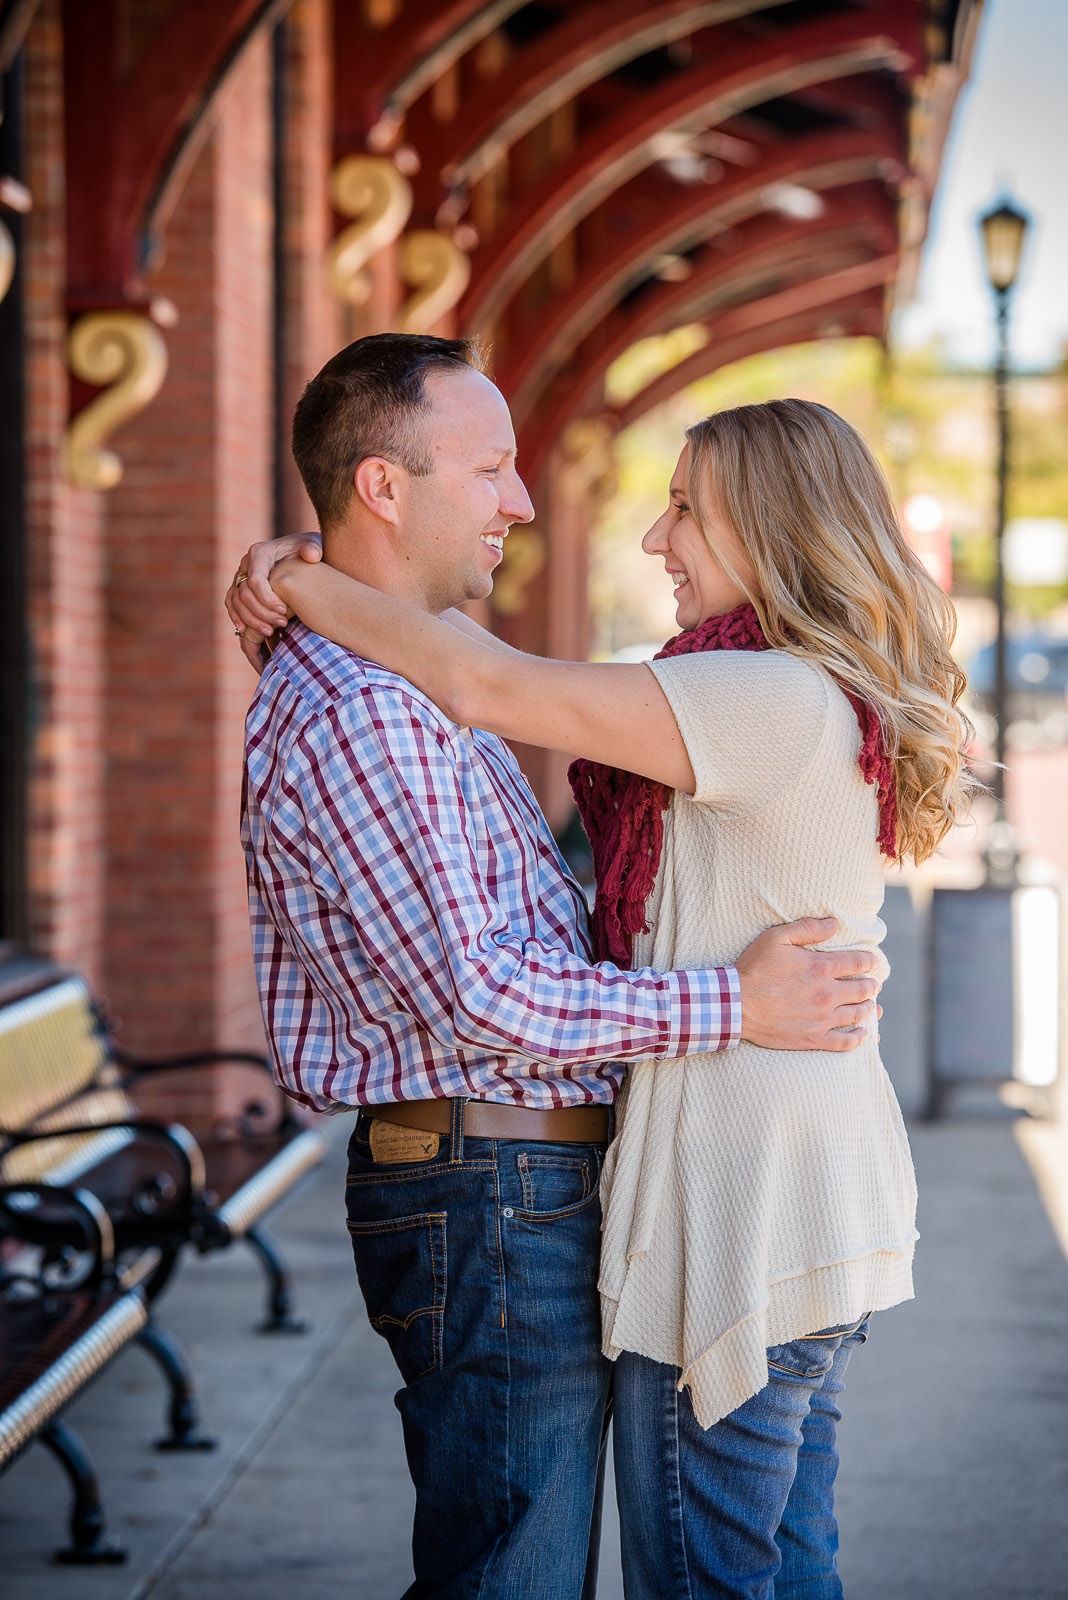 Eric_and_Christy_Photography_Blog_Megan_Nate_Engagement-2